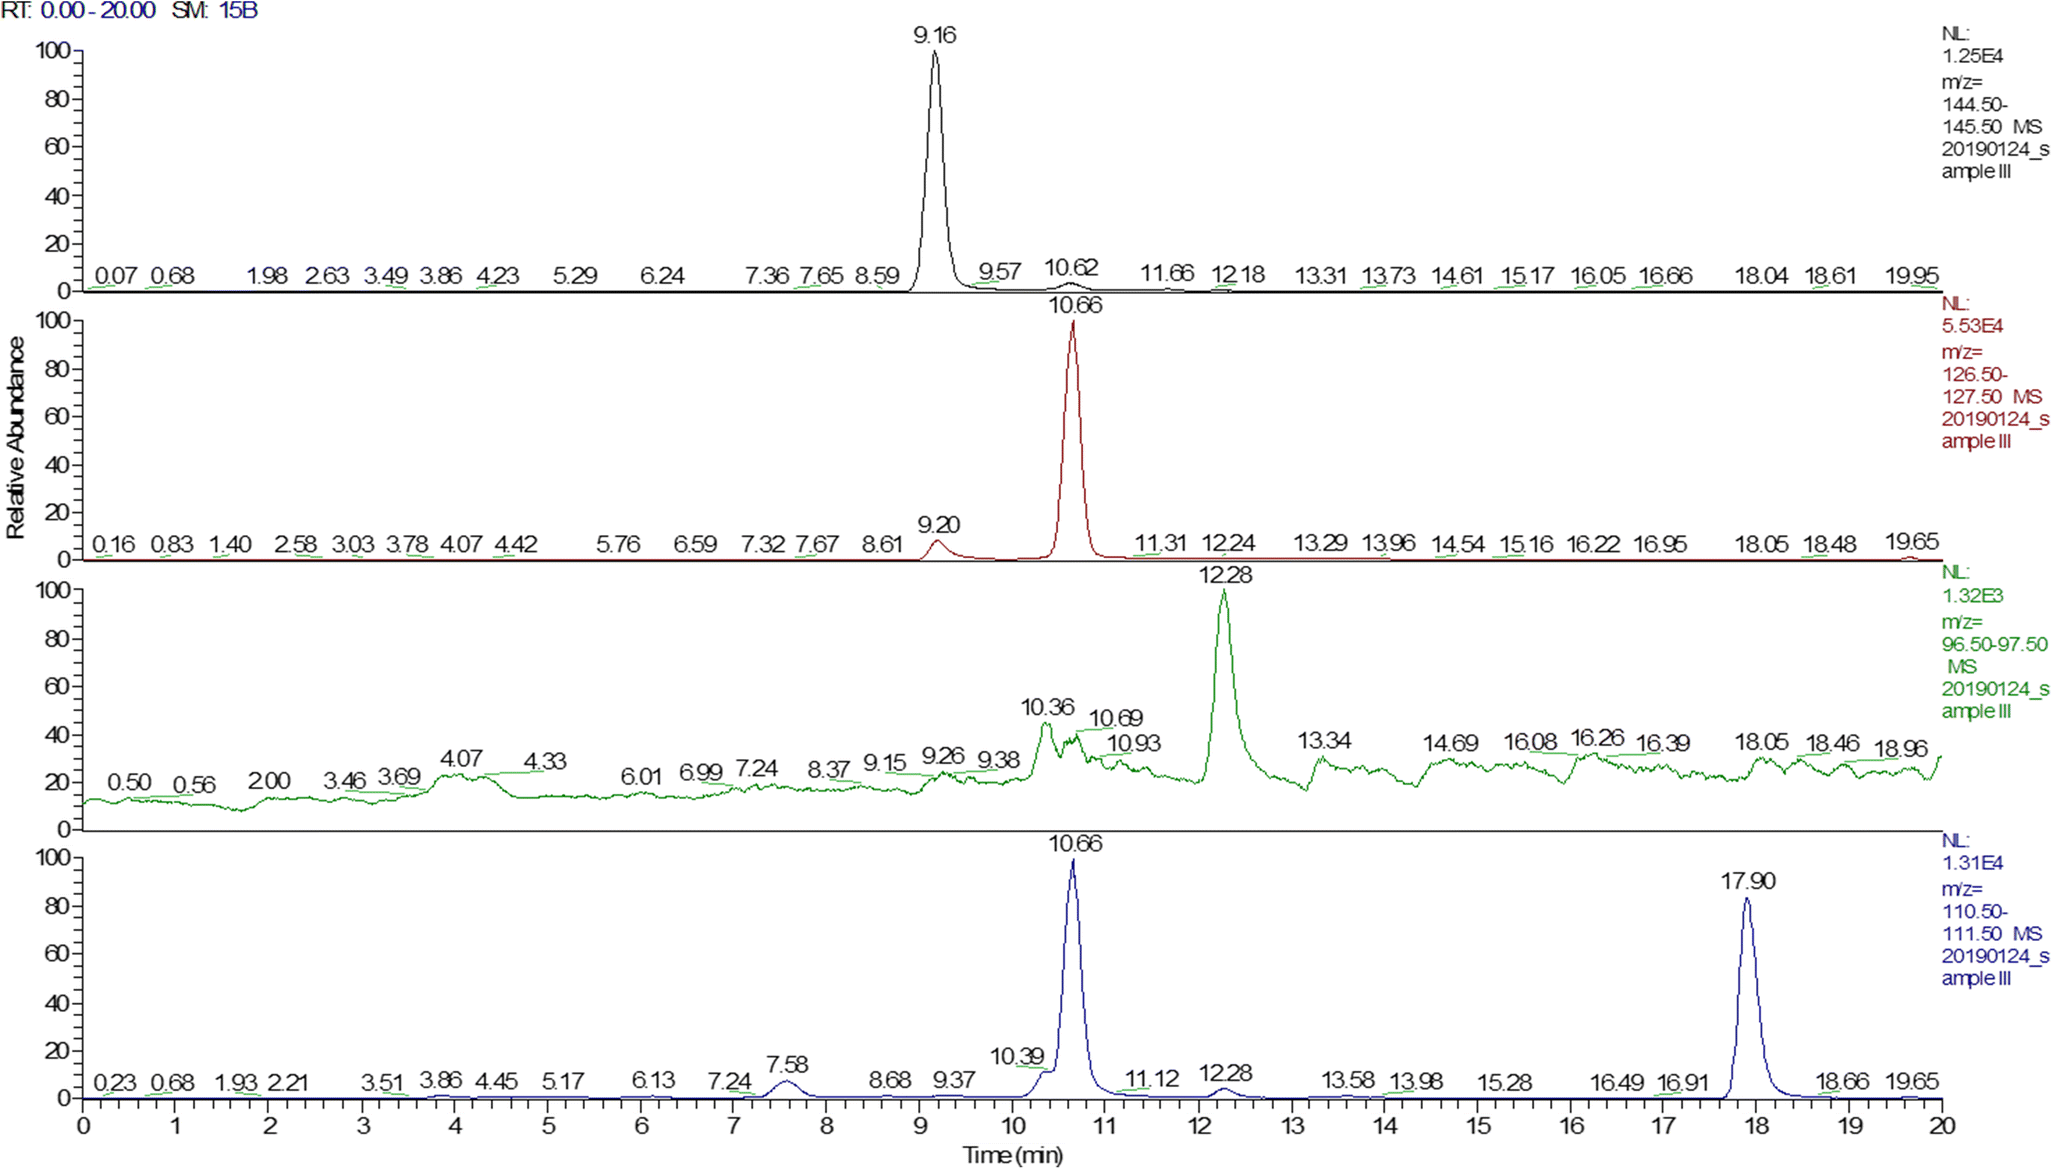 Determination of Four Bitter Compounds in Caramel Colors and